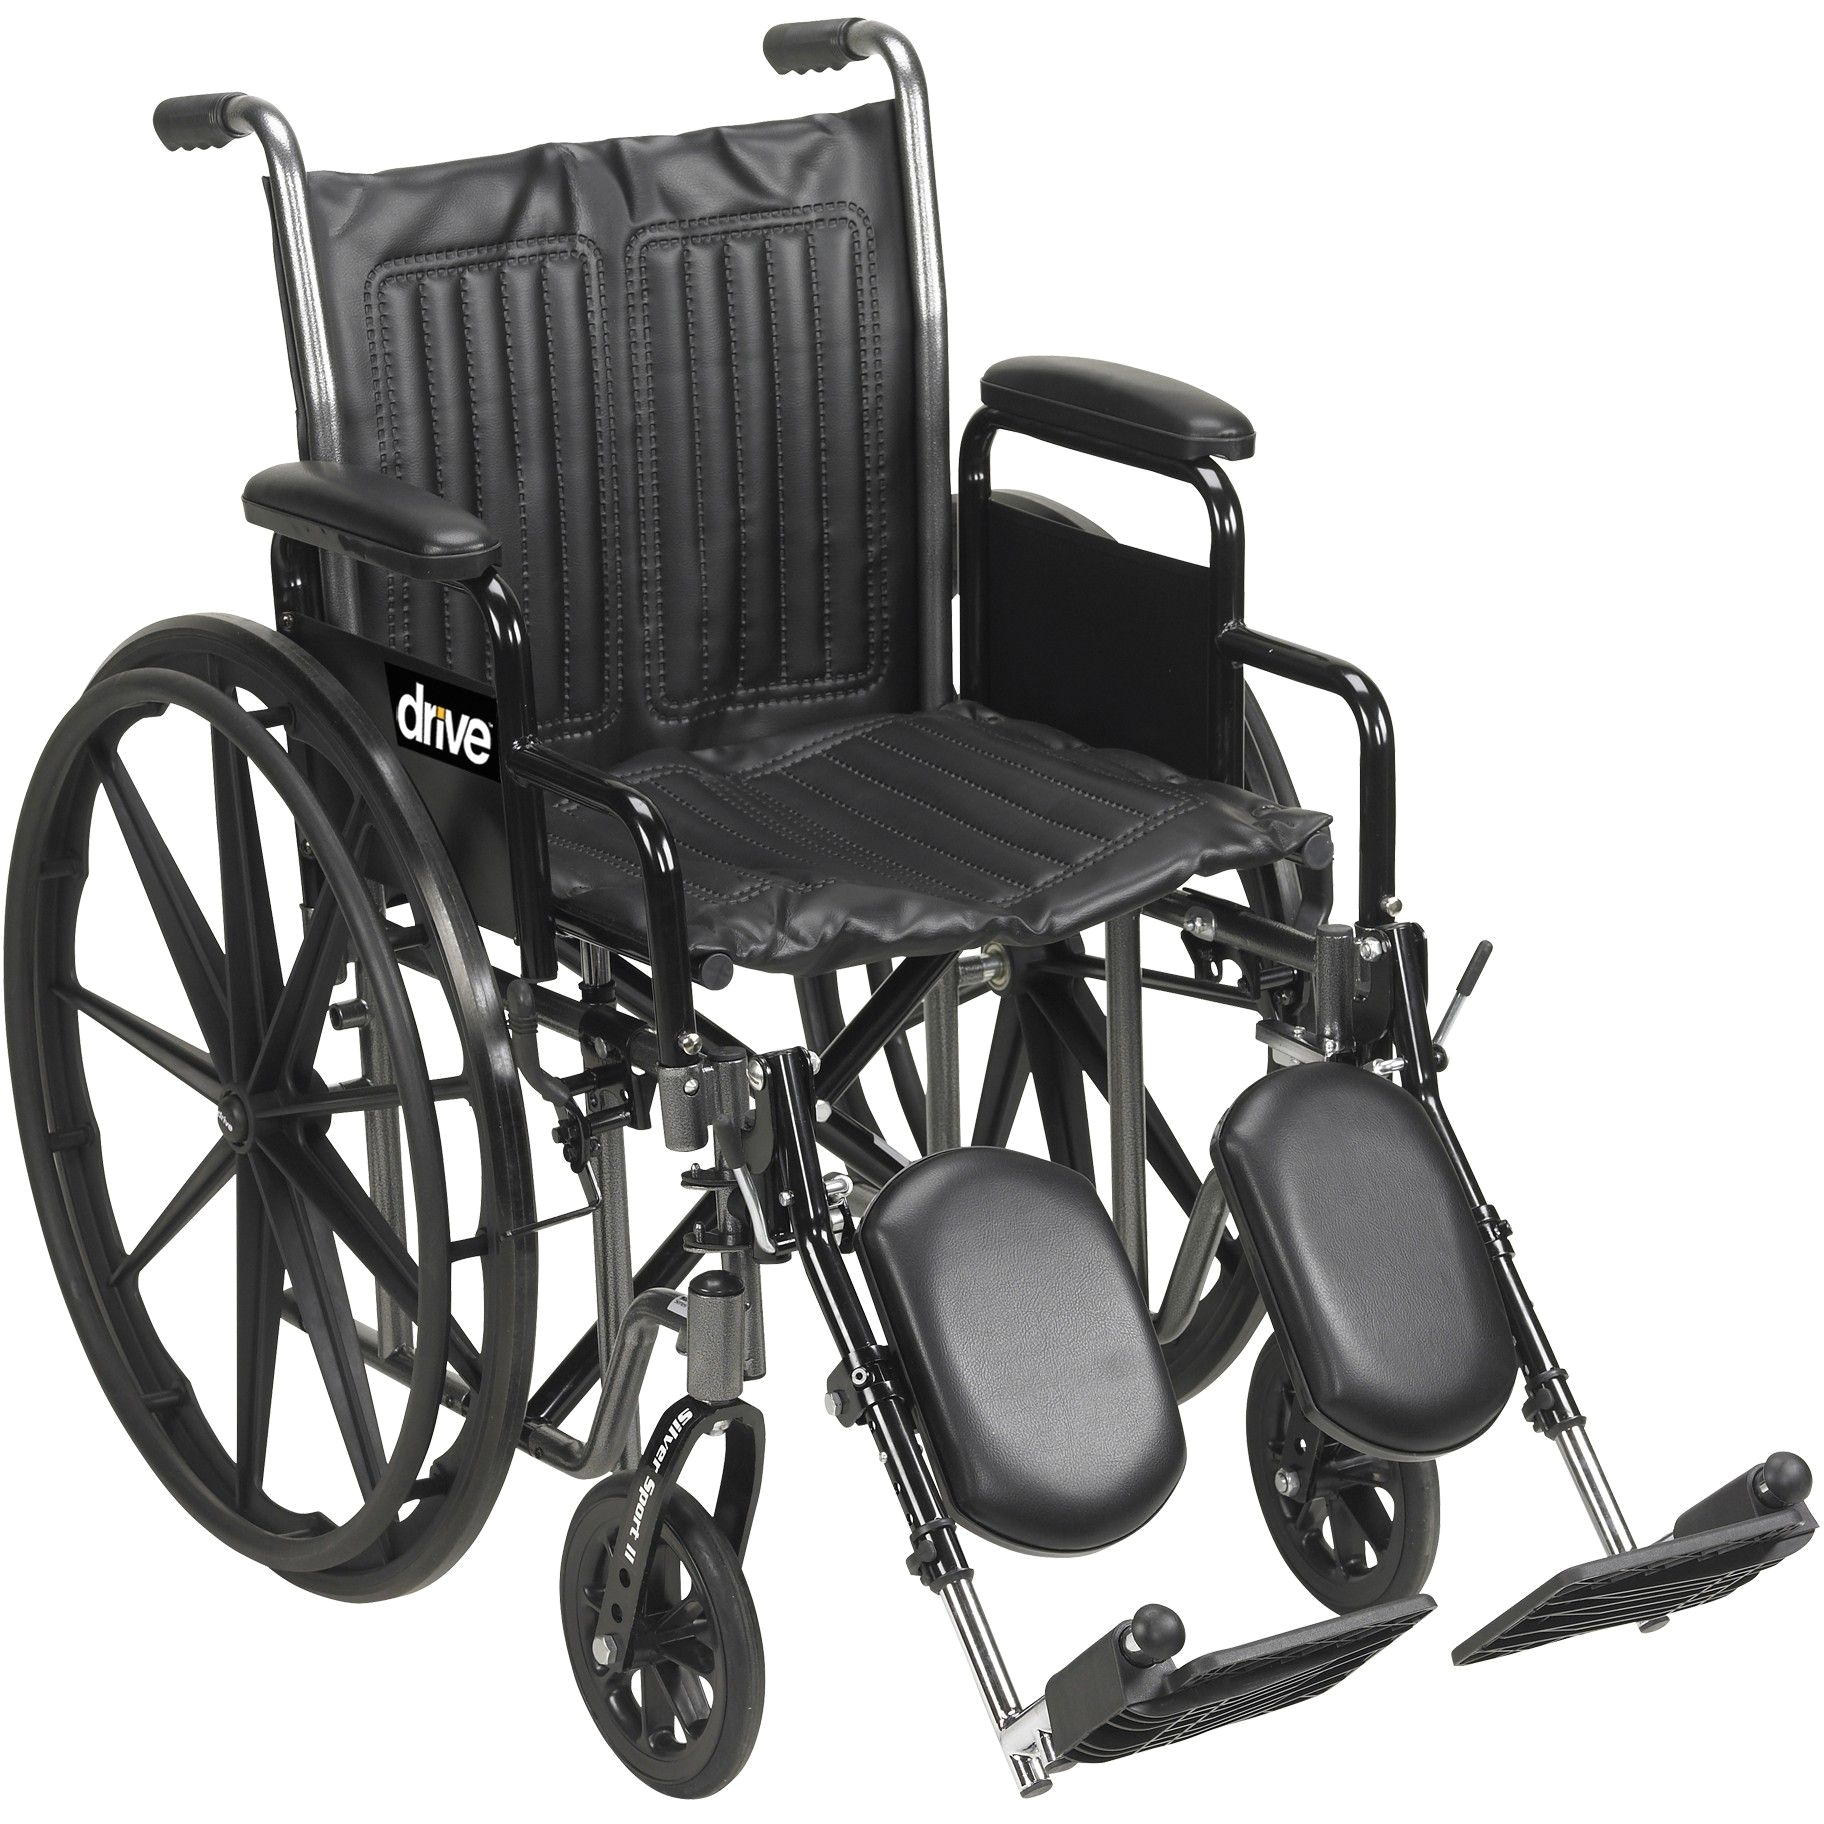 Proper Way to Transfer A Patient From Wheelchair to Chair torbellino Wheelchair Able to Help the Disabled with Mobility